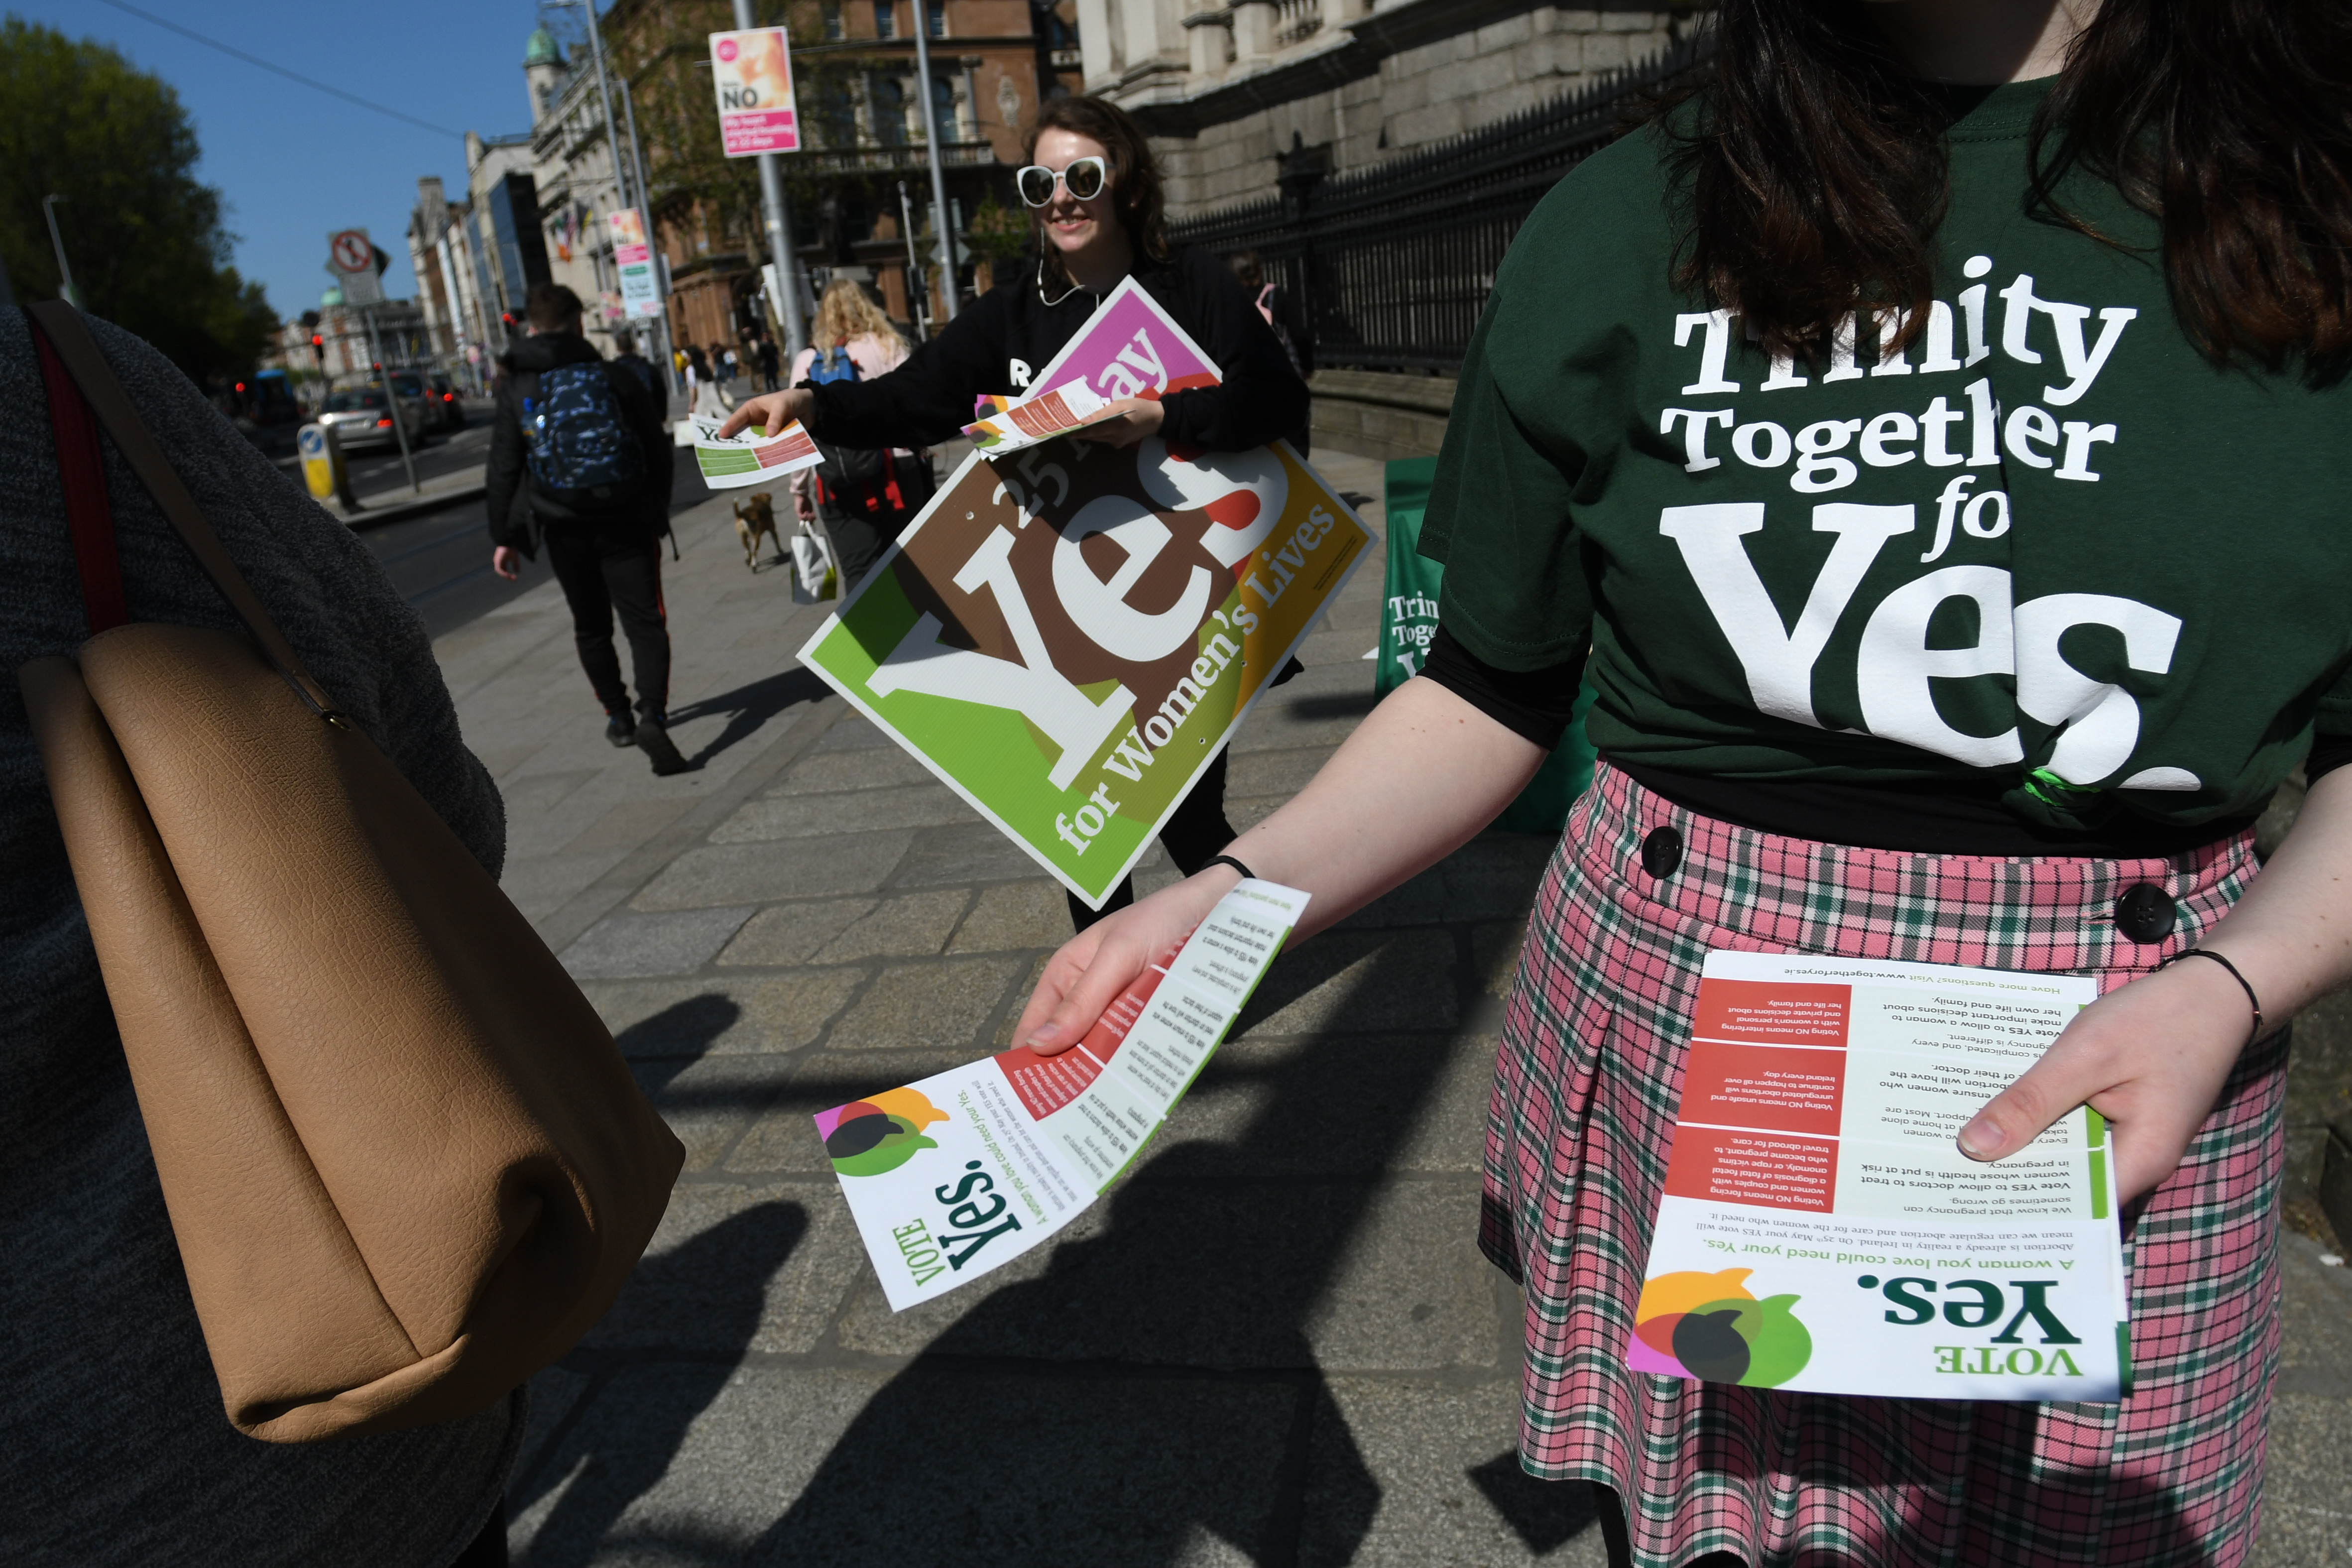 Activists from the 'Trinity Together for Yes' campaign canvass in front of Trinity College, urging a 'yes' vote.